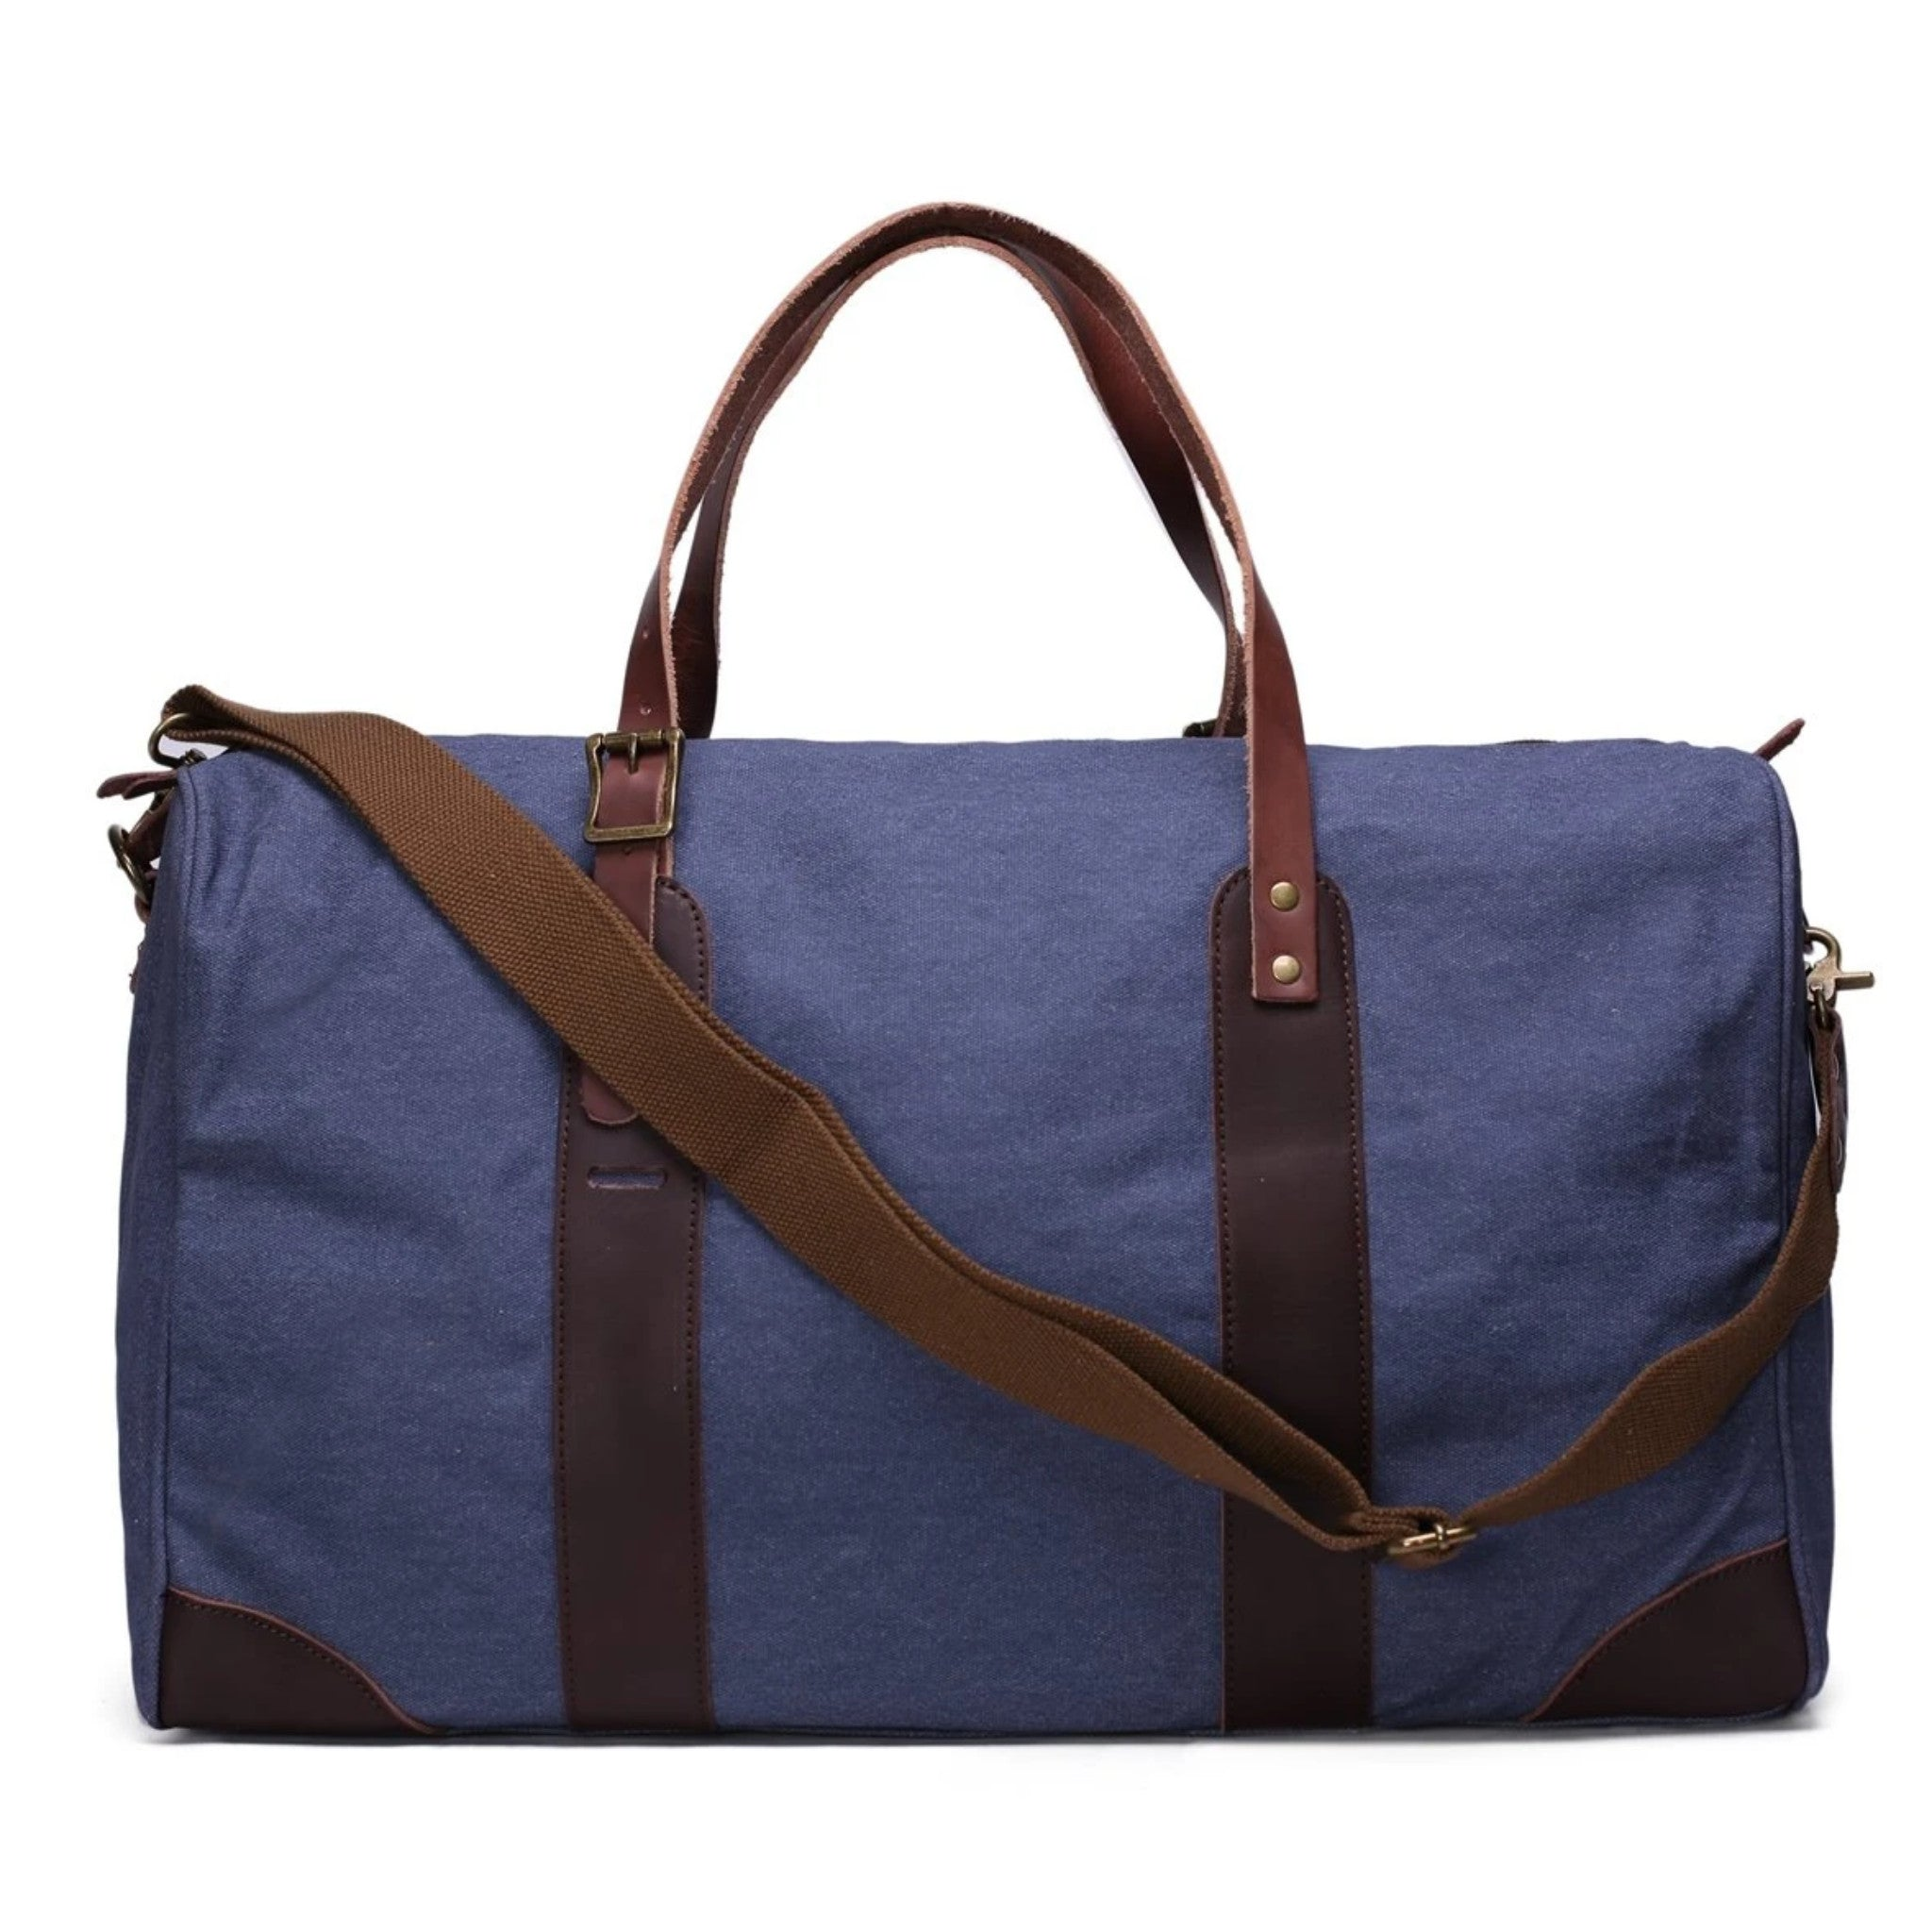 Waxed Canvas with Leather Trim Travel Duffle Weekender Bag | Blue - Blue Sebe